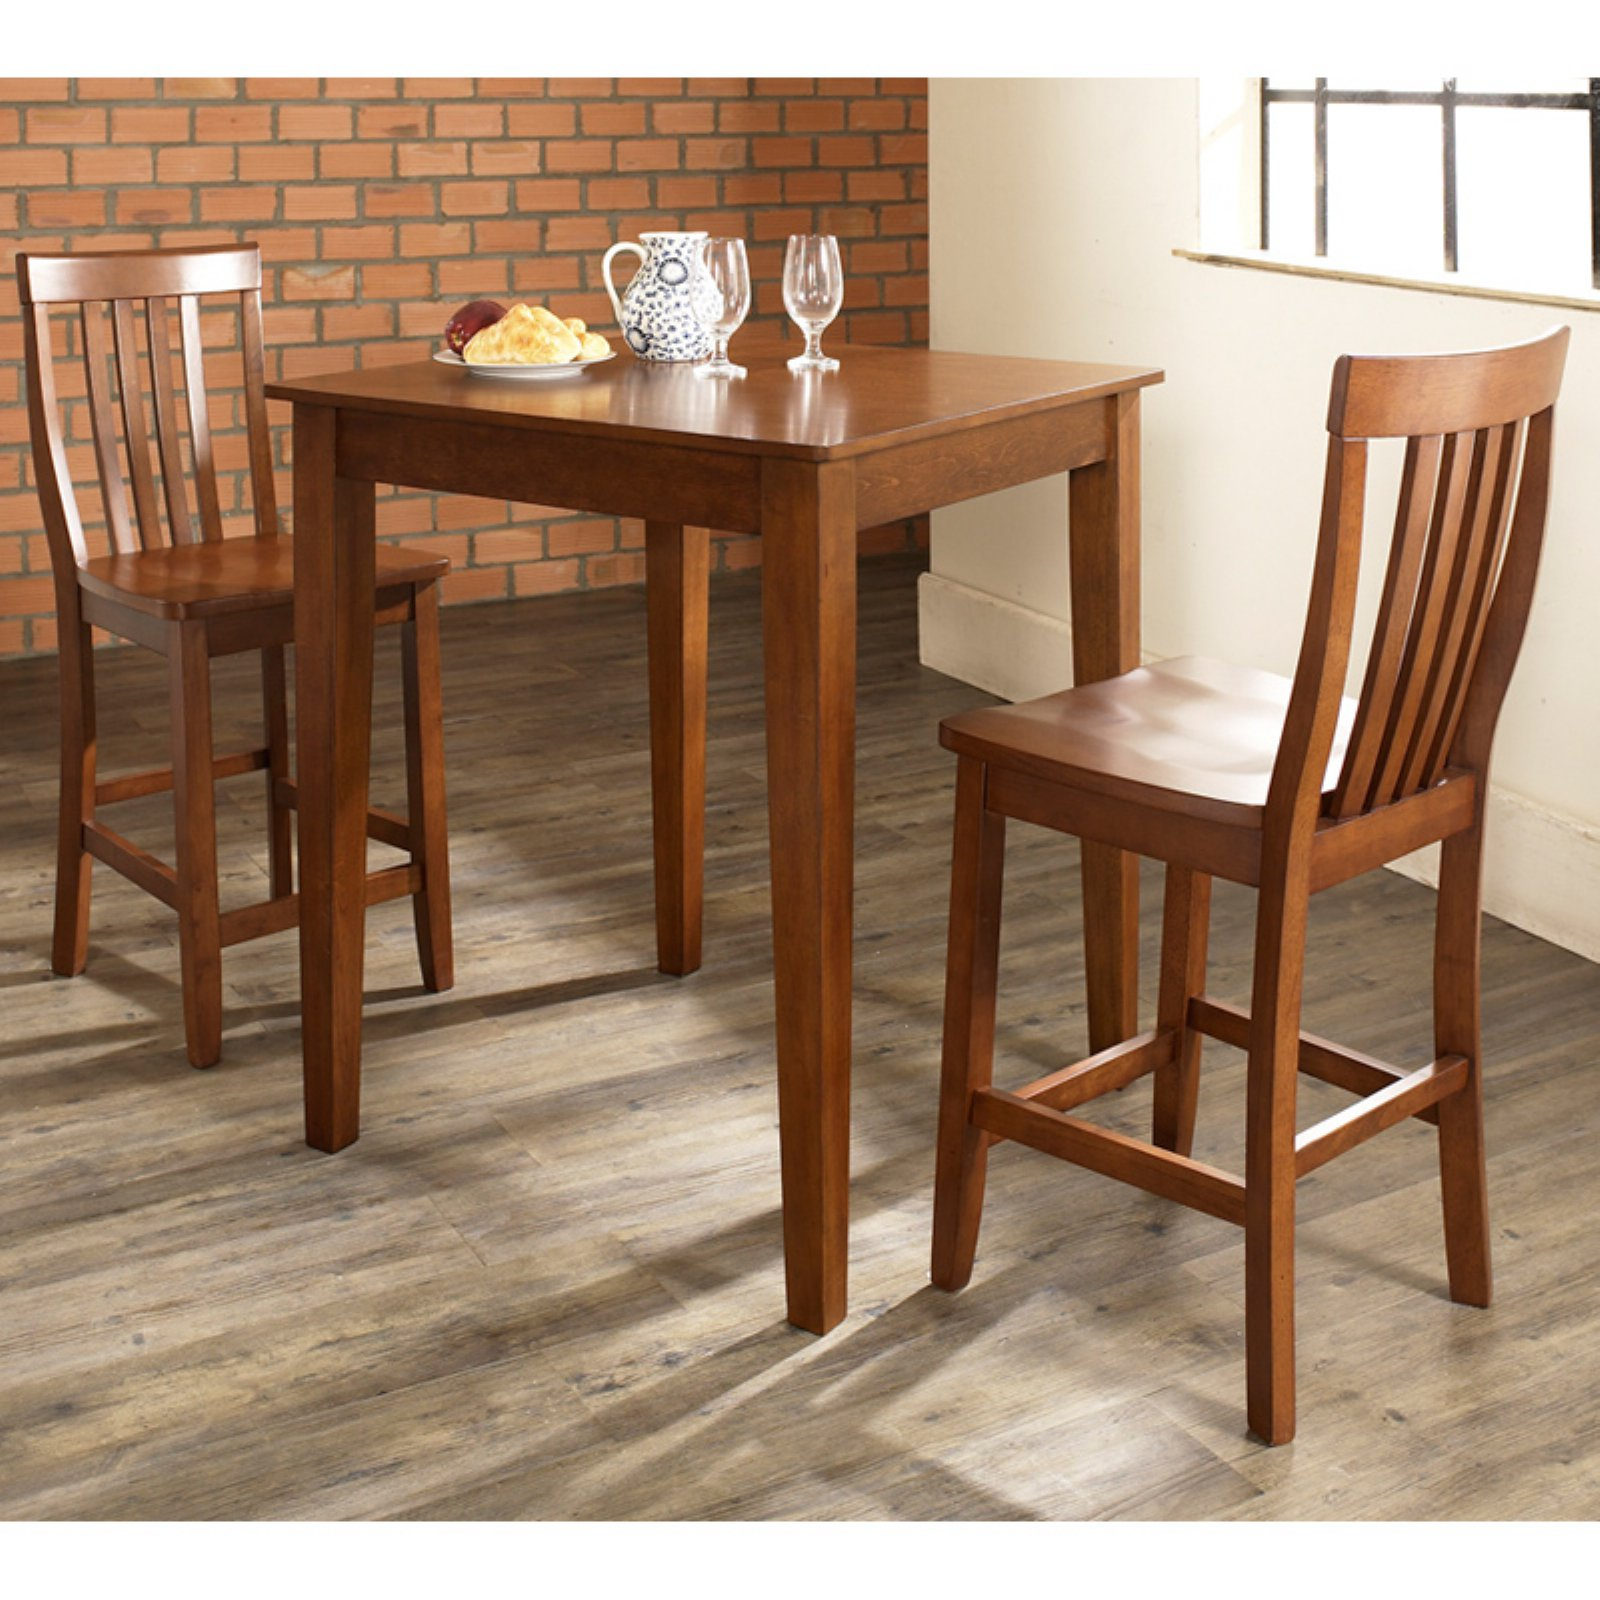 Crosley Furniture 3-Piece Pub Dining Set with Tapered Leg and School House Stools